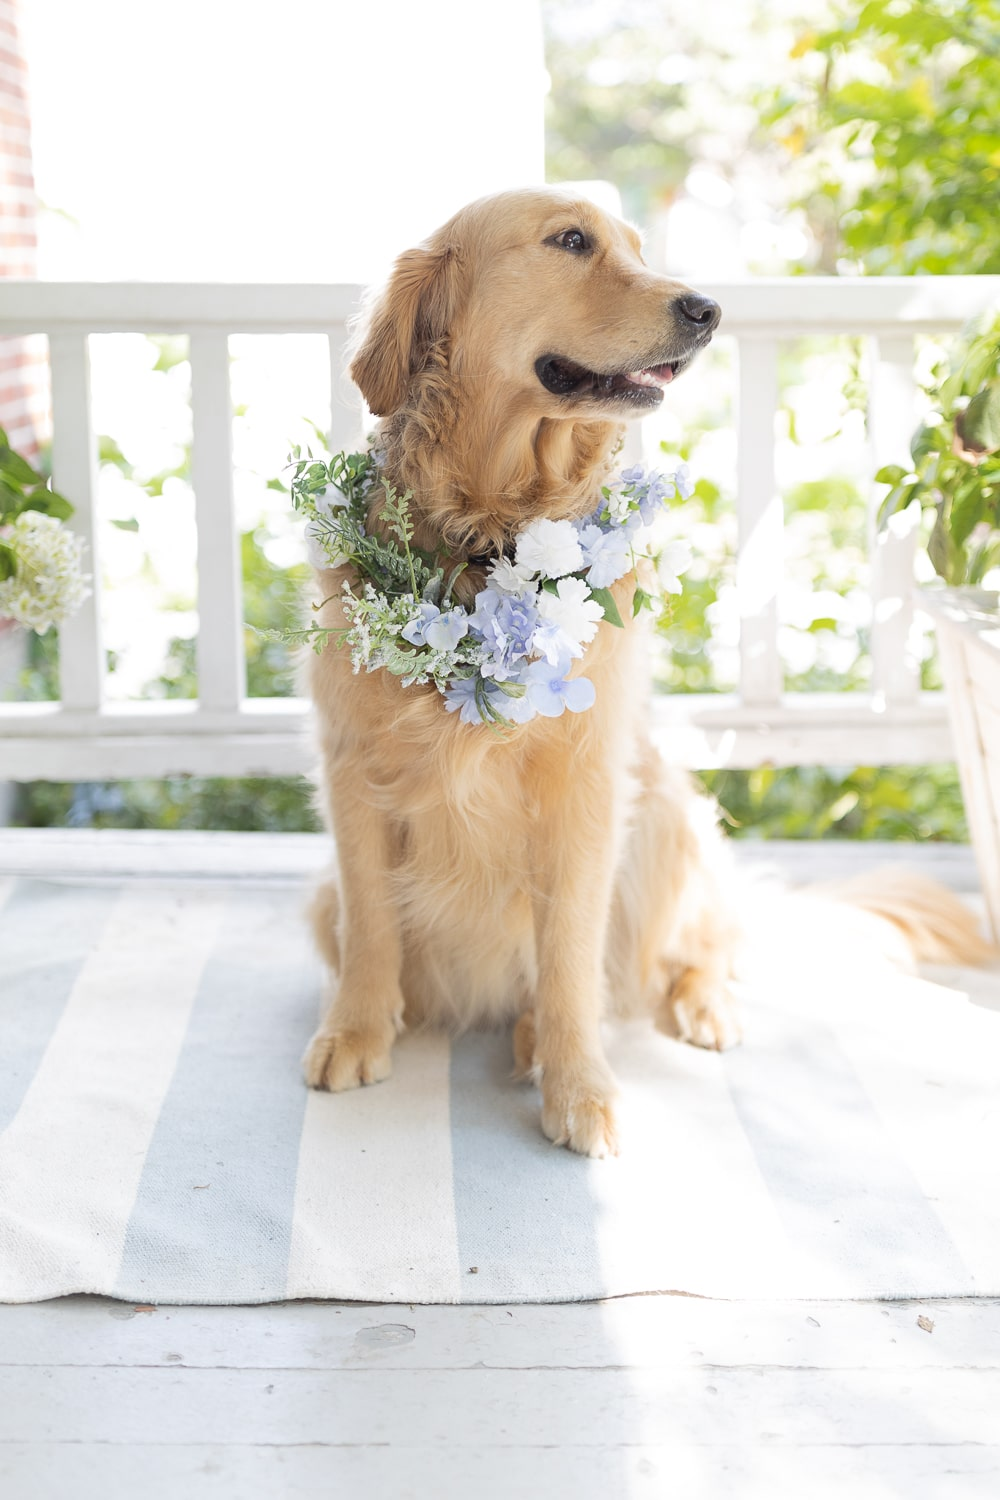 Golden retriever wearing a blue and white dog flower collar for blogger Stephanie Ziajka's wedding on Diary of a Debutante